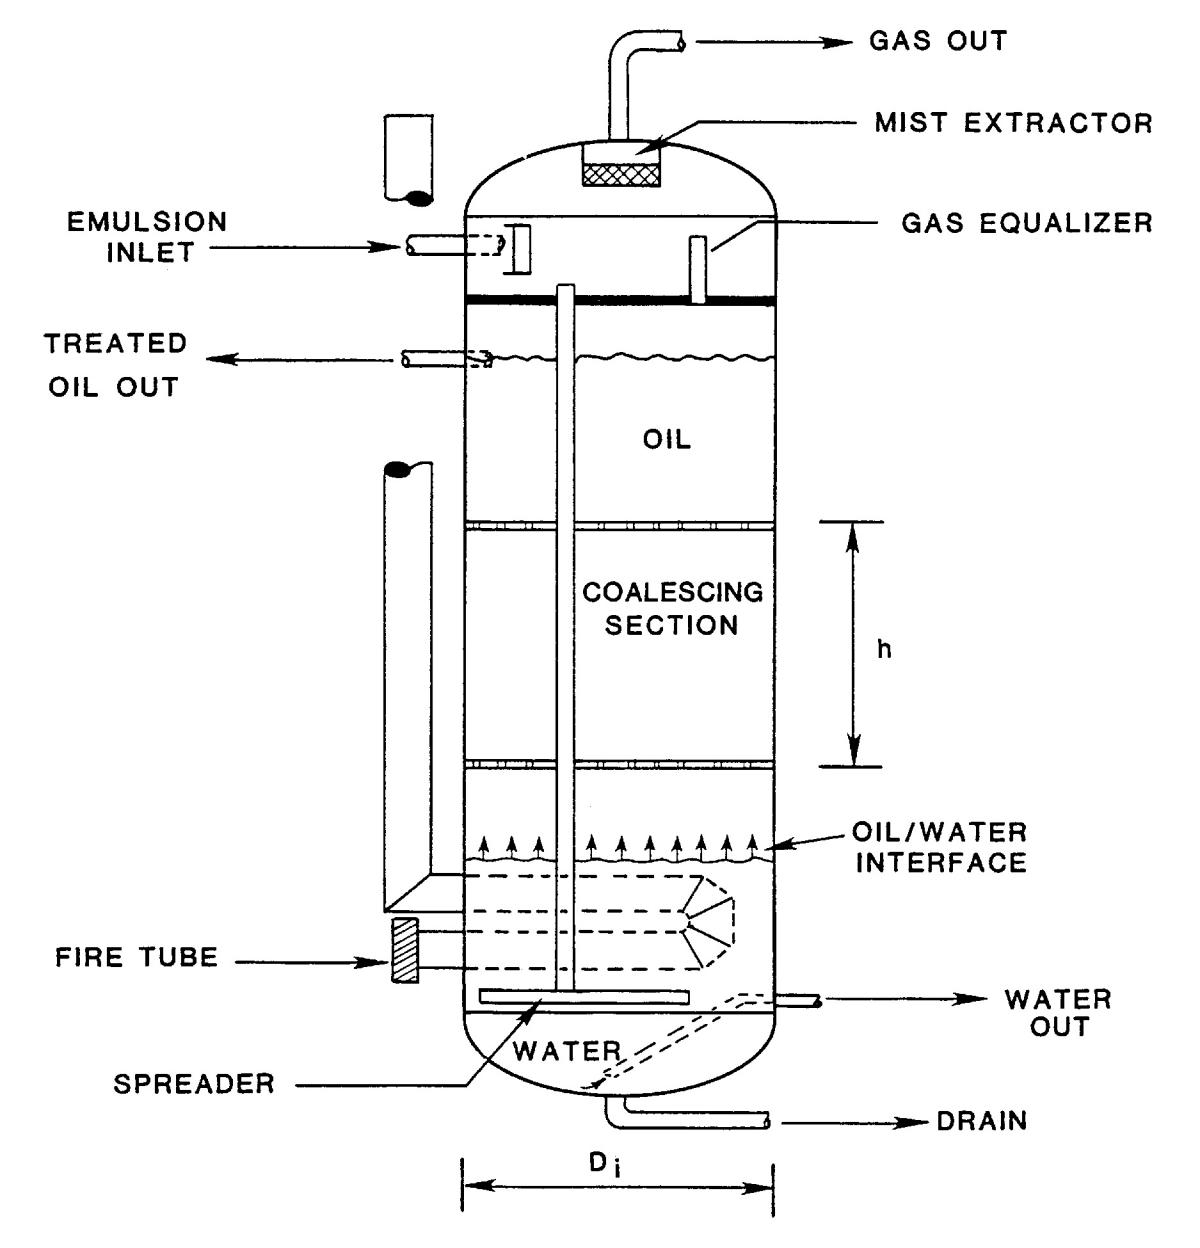 3 Phase Separator Sizing Spreadsheet With Design Guide For Sizing Vertical Oil Treaters  Cheresources